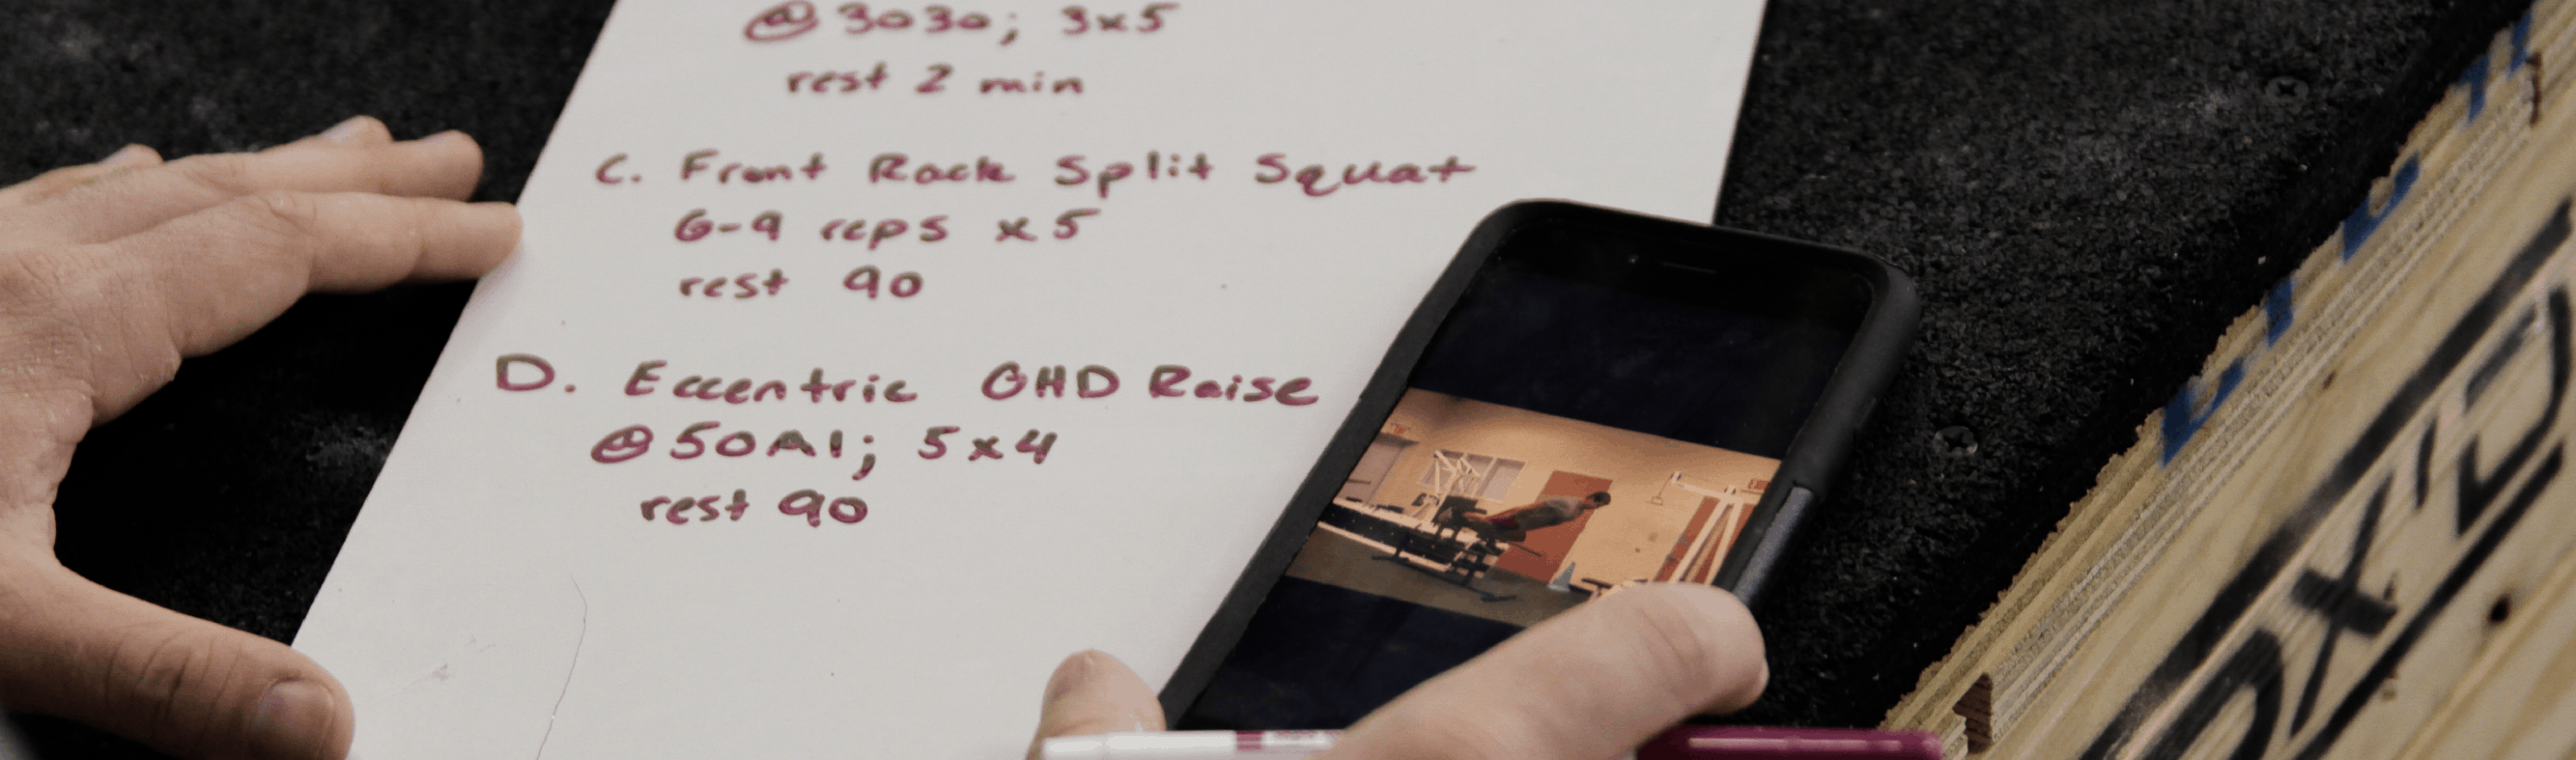 Program Design for Personal Trainers - 3 Tips